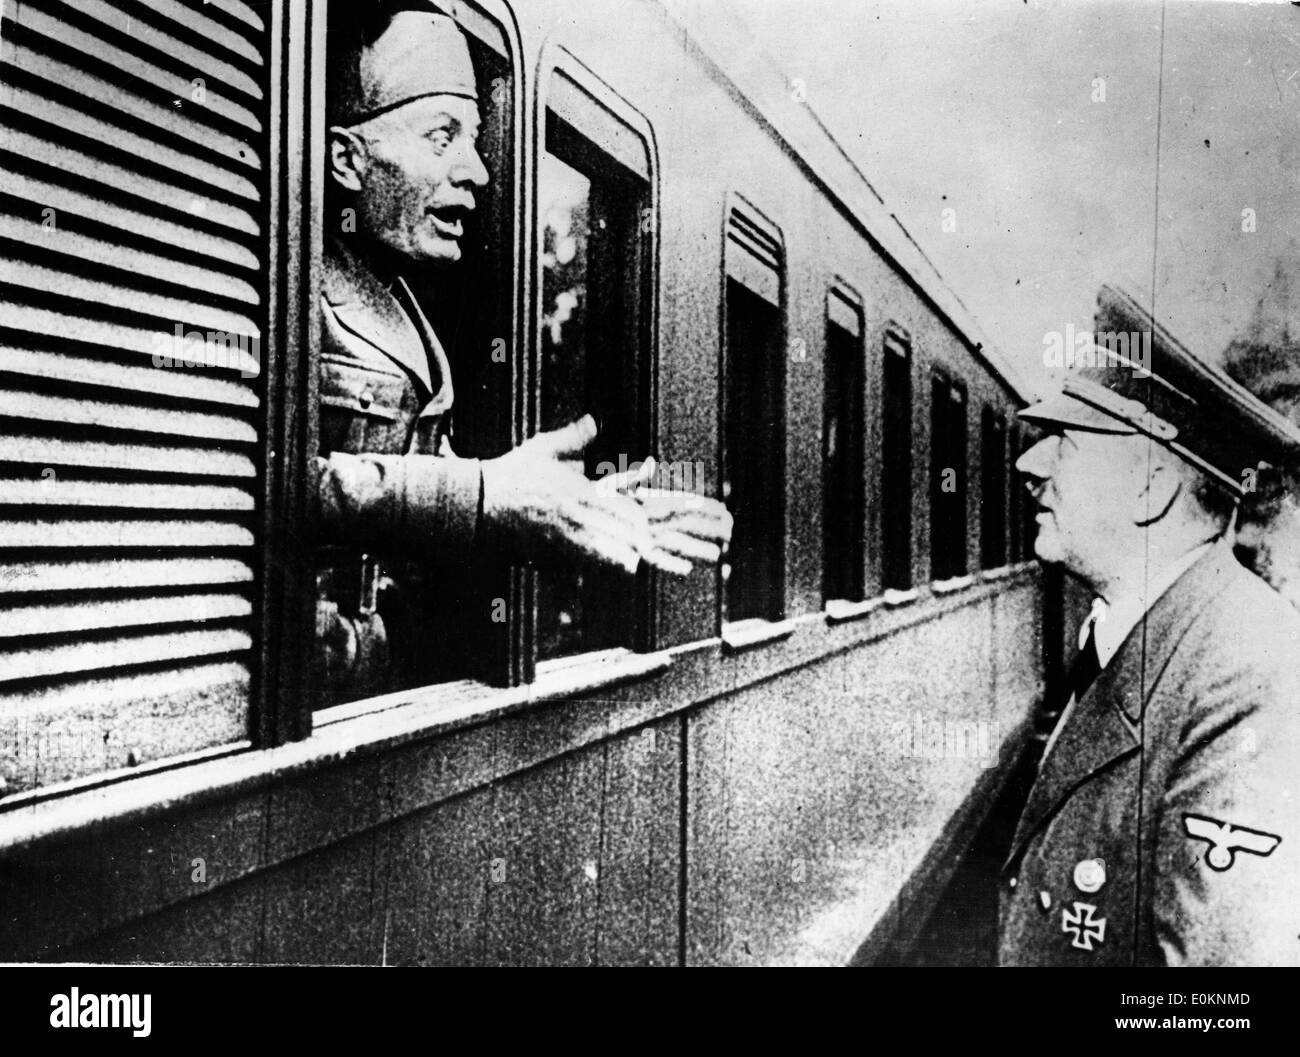 Adolf Hitler bidding farewell to Mussolini - Stock Image